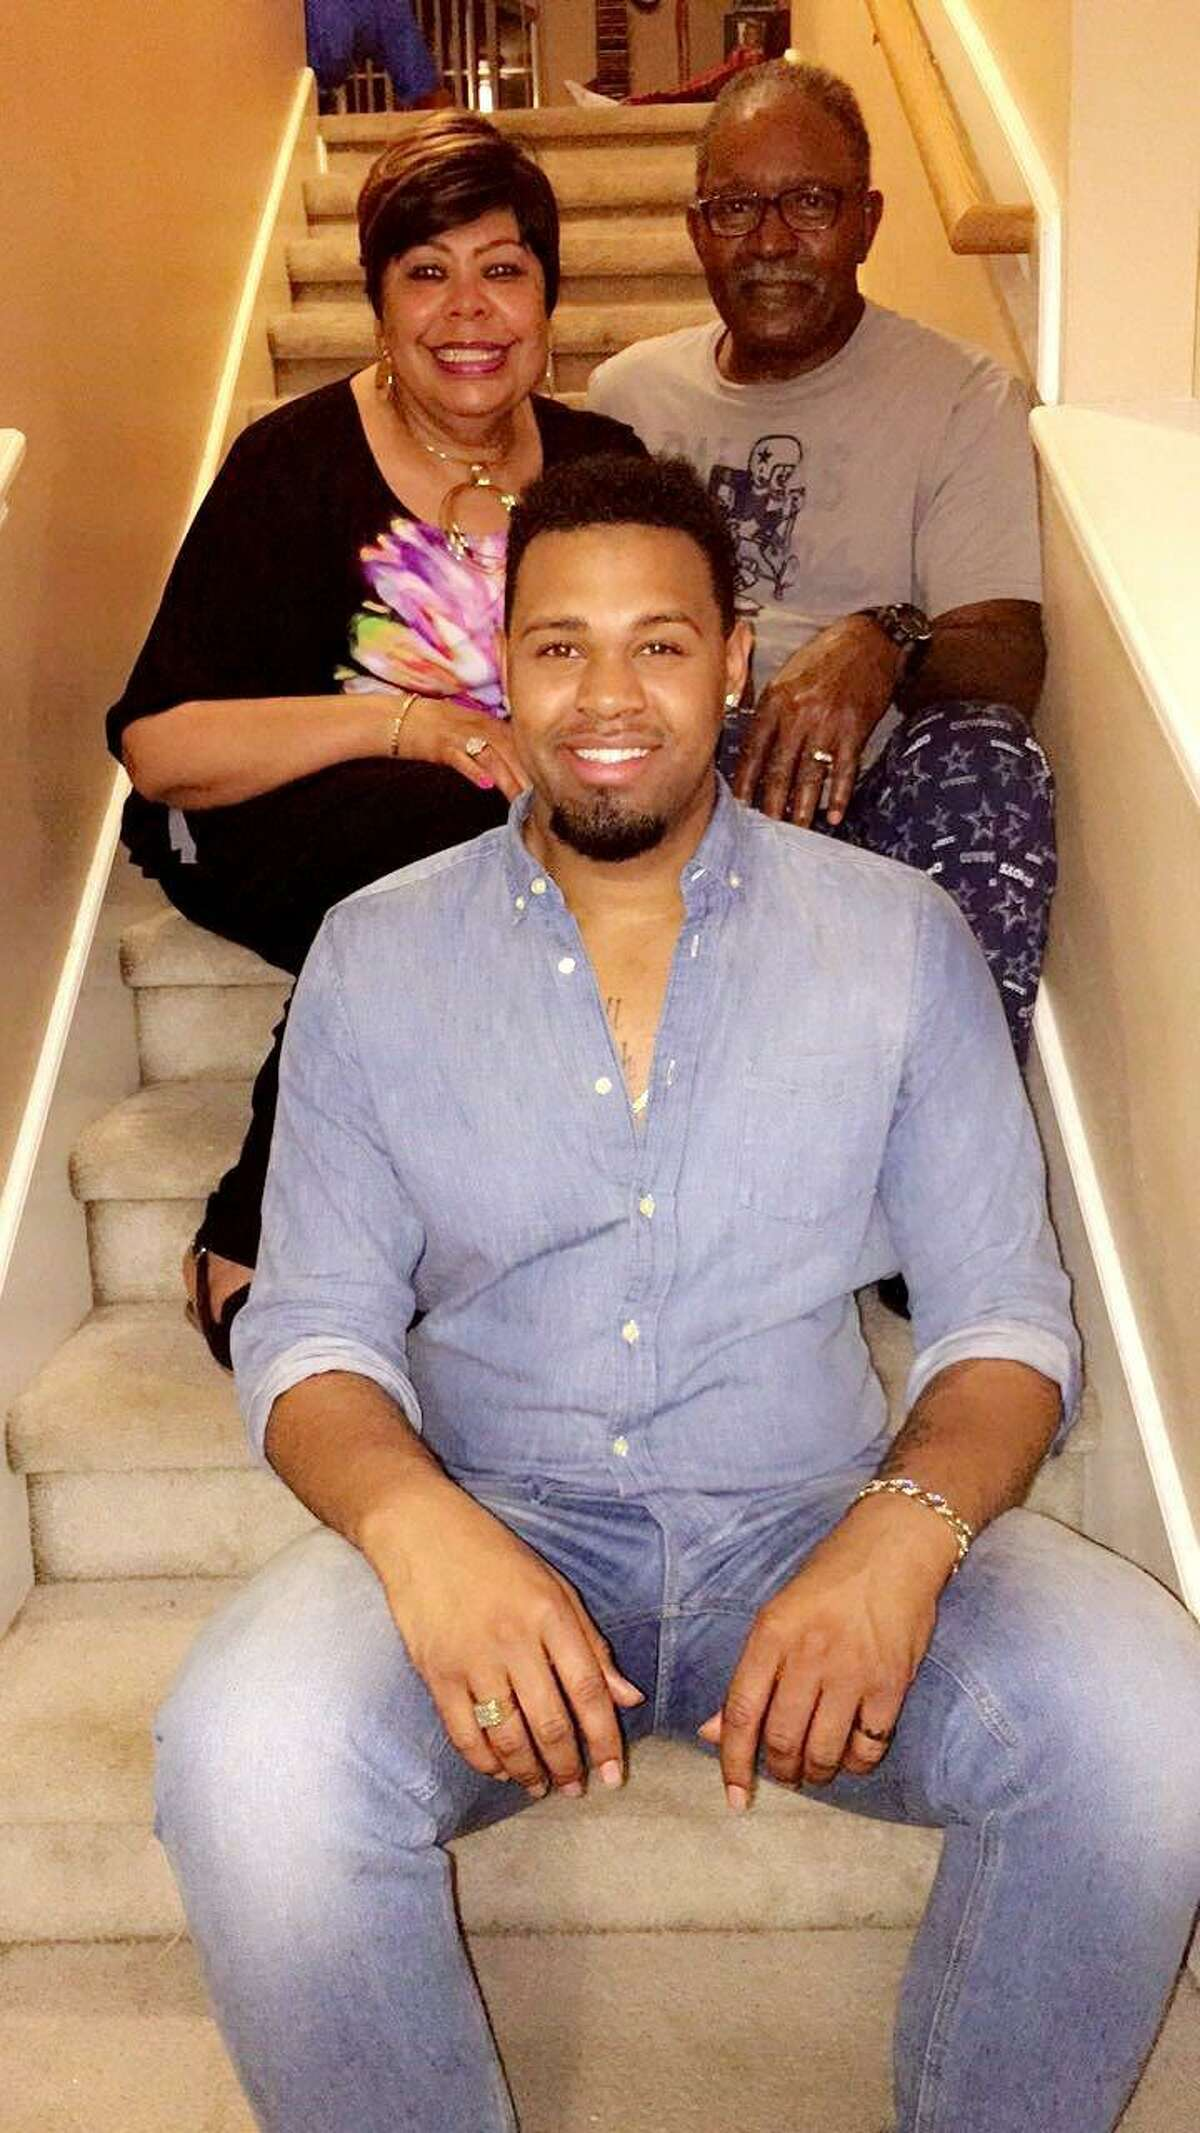 """Ozen graduate Deondre Moore, 22, and his family were featured in a """"We are Family"""" docu-series presented by Greater than AIDS and the Elton John AIDS Foundation. The campaign aims to promote family support for people with HIV."""